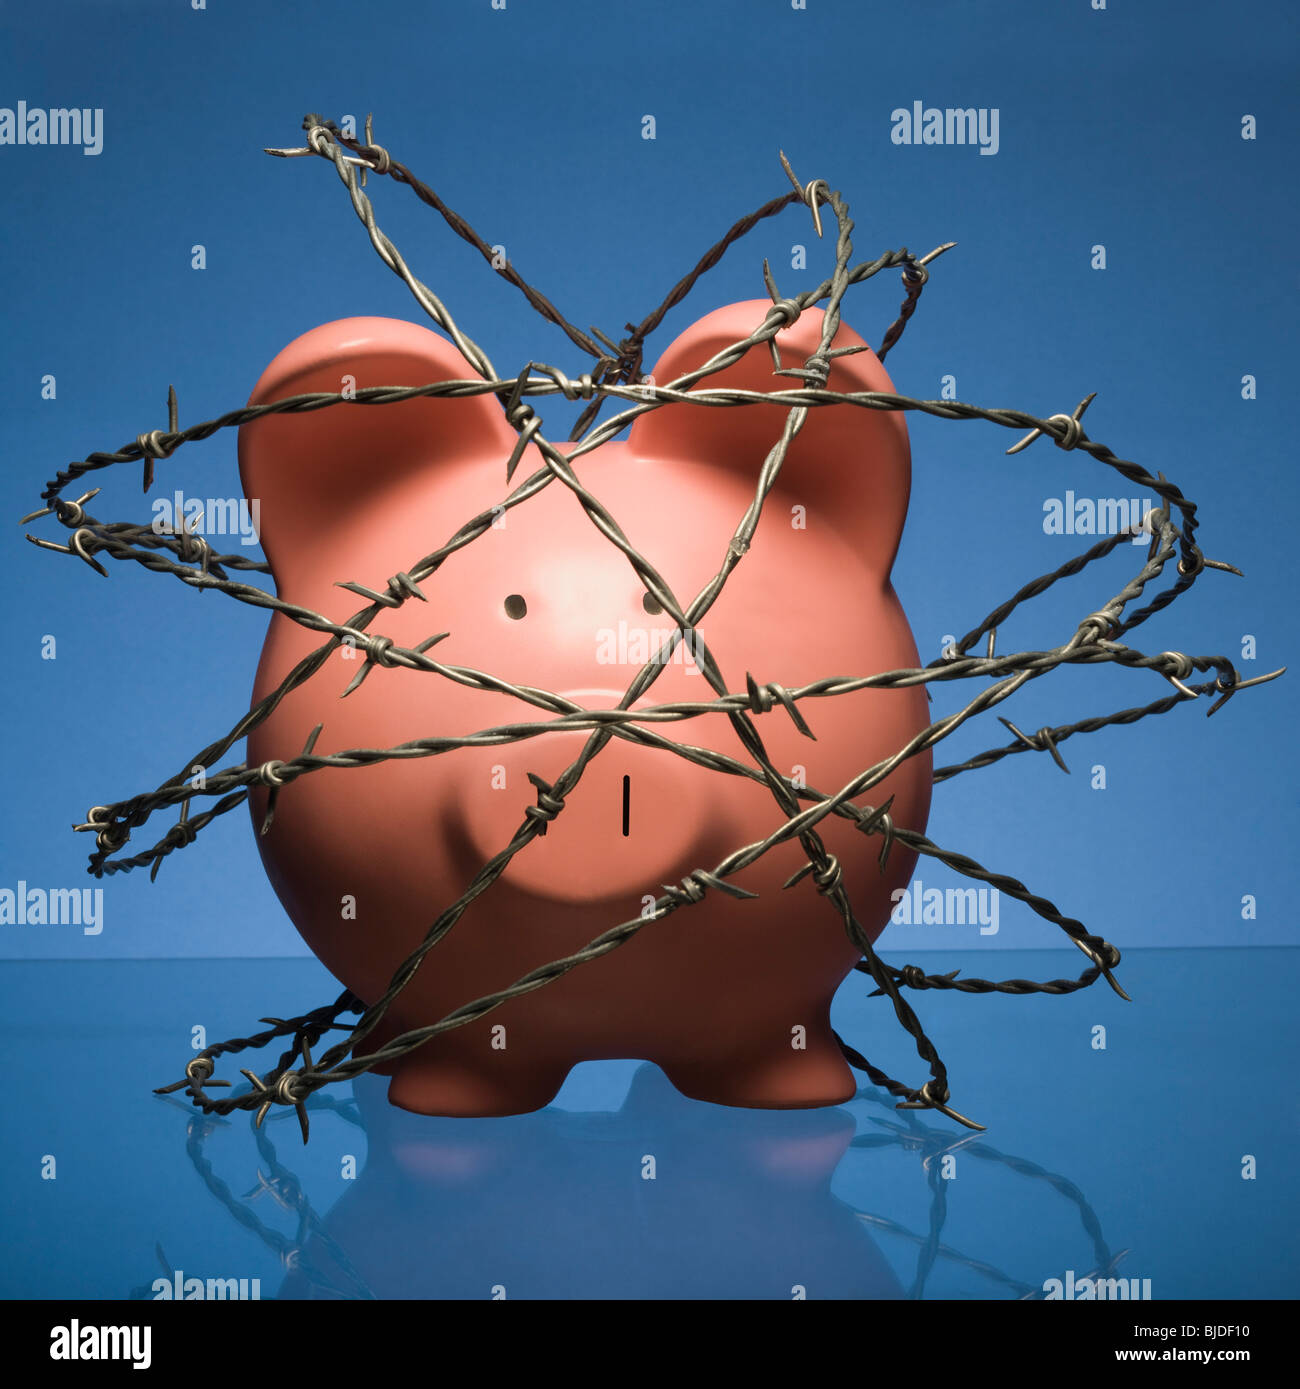 Piggy bank surrounded by barbed wire. - Stock Image